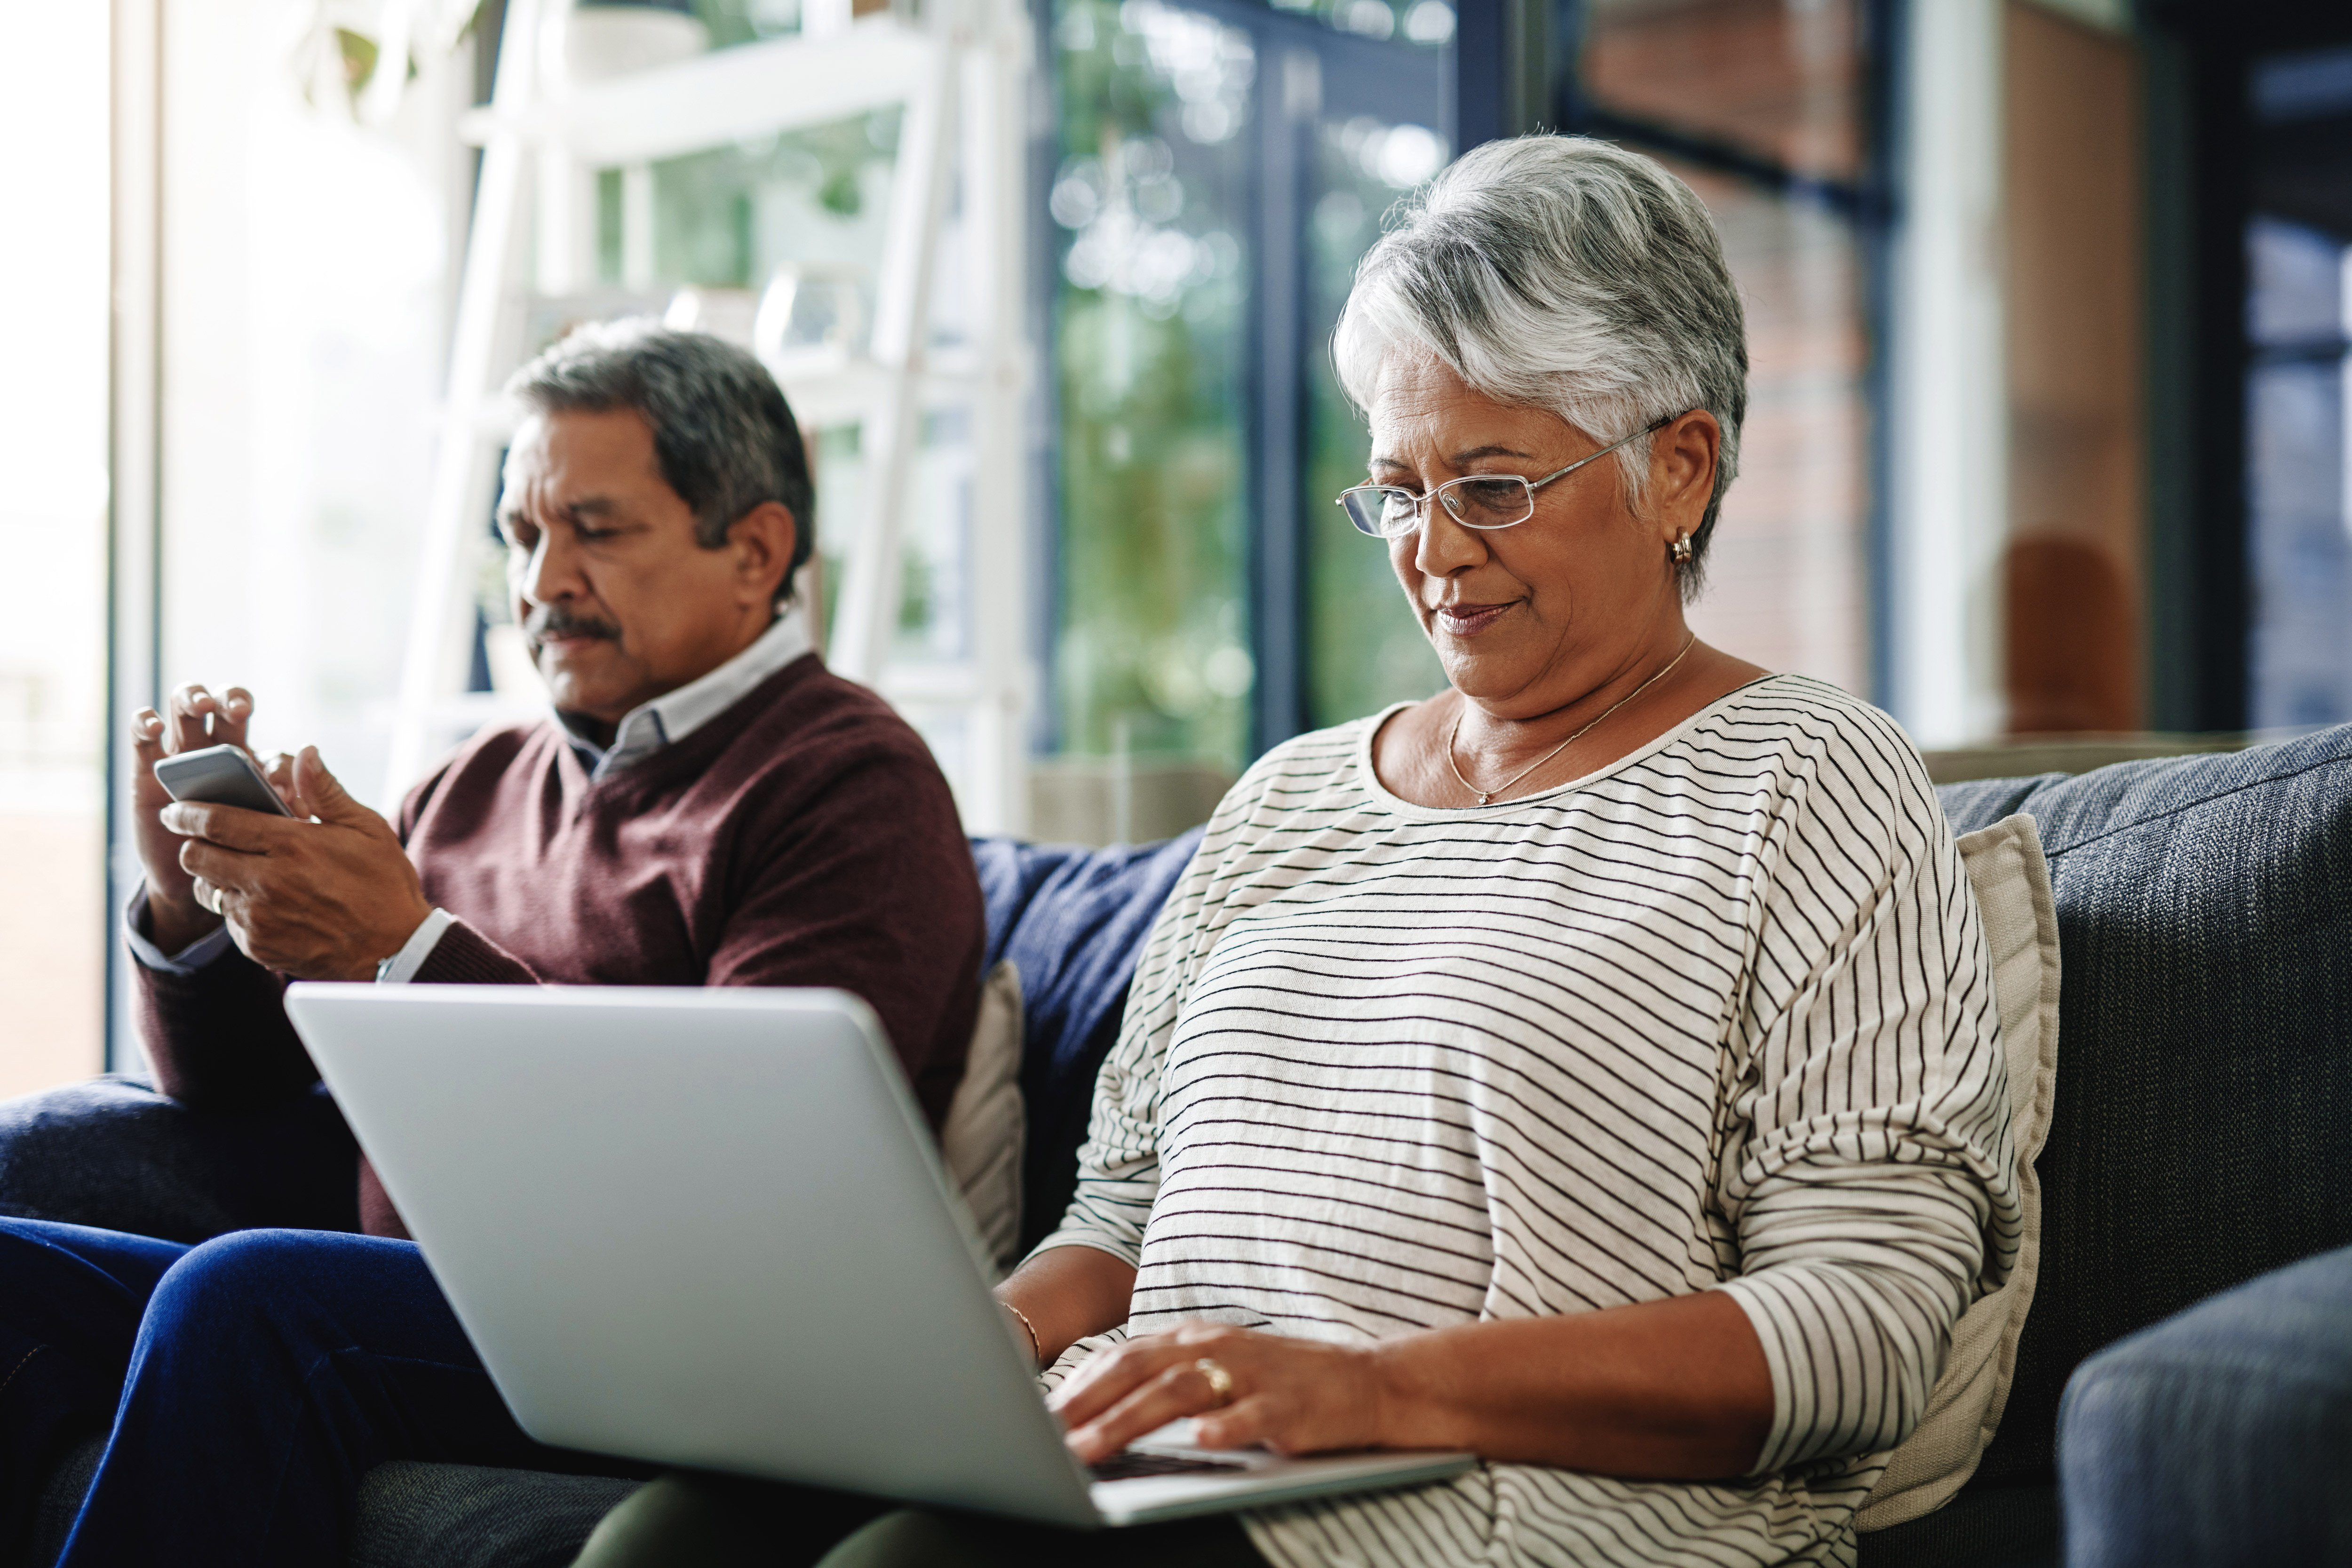 Mature woman using a laptop next to her husband using his phone. on the couch at home.